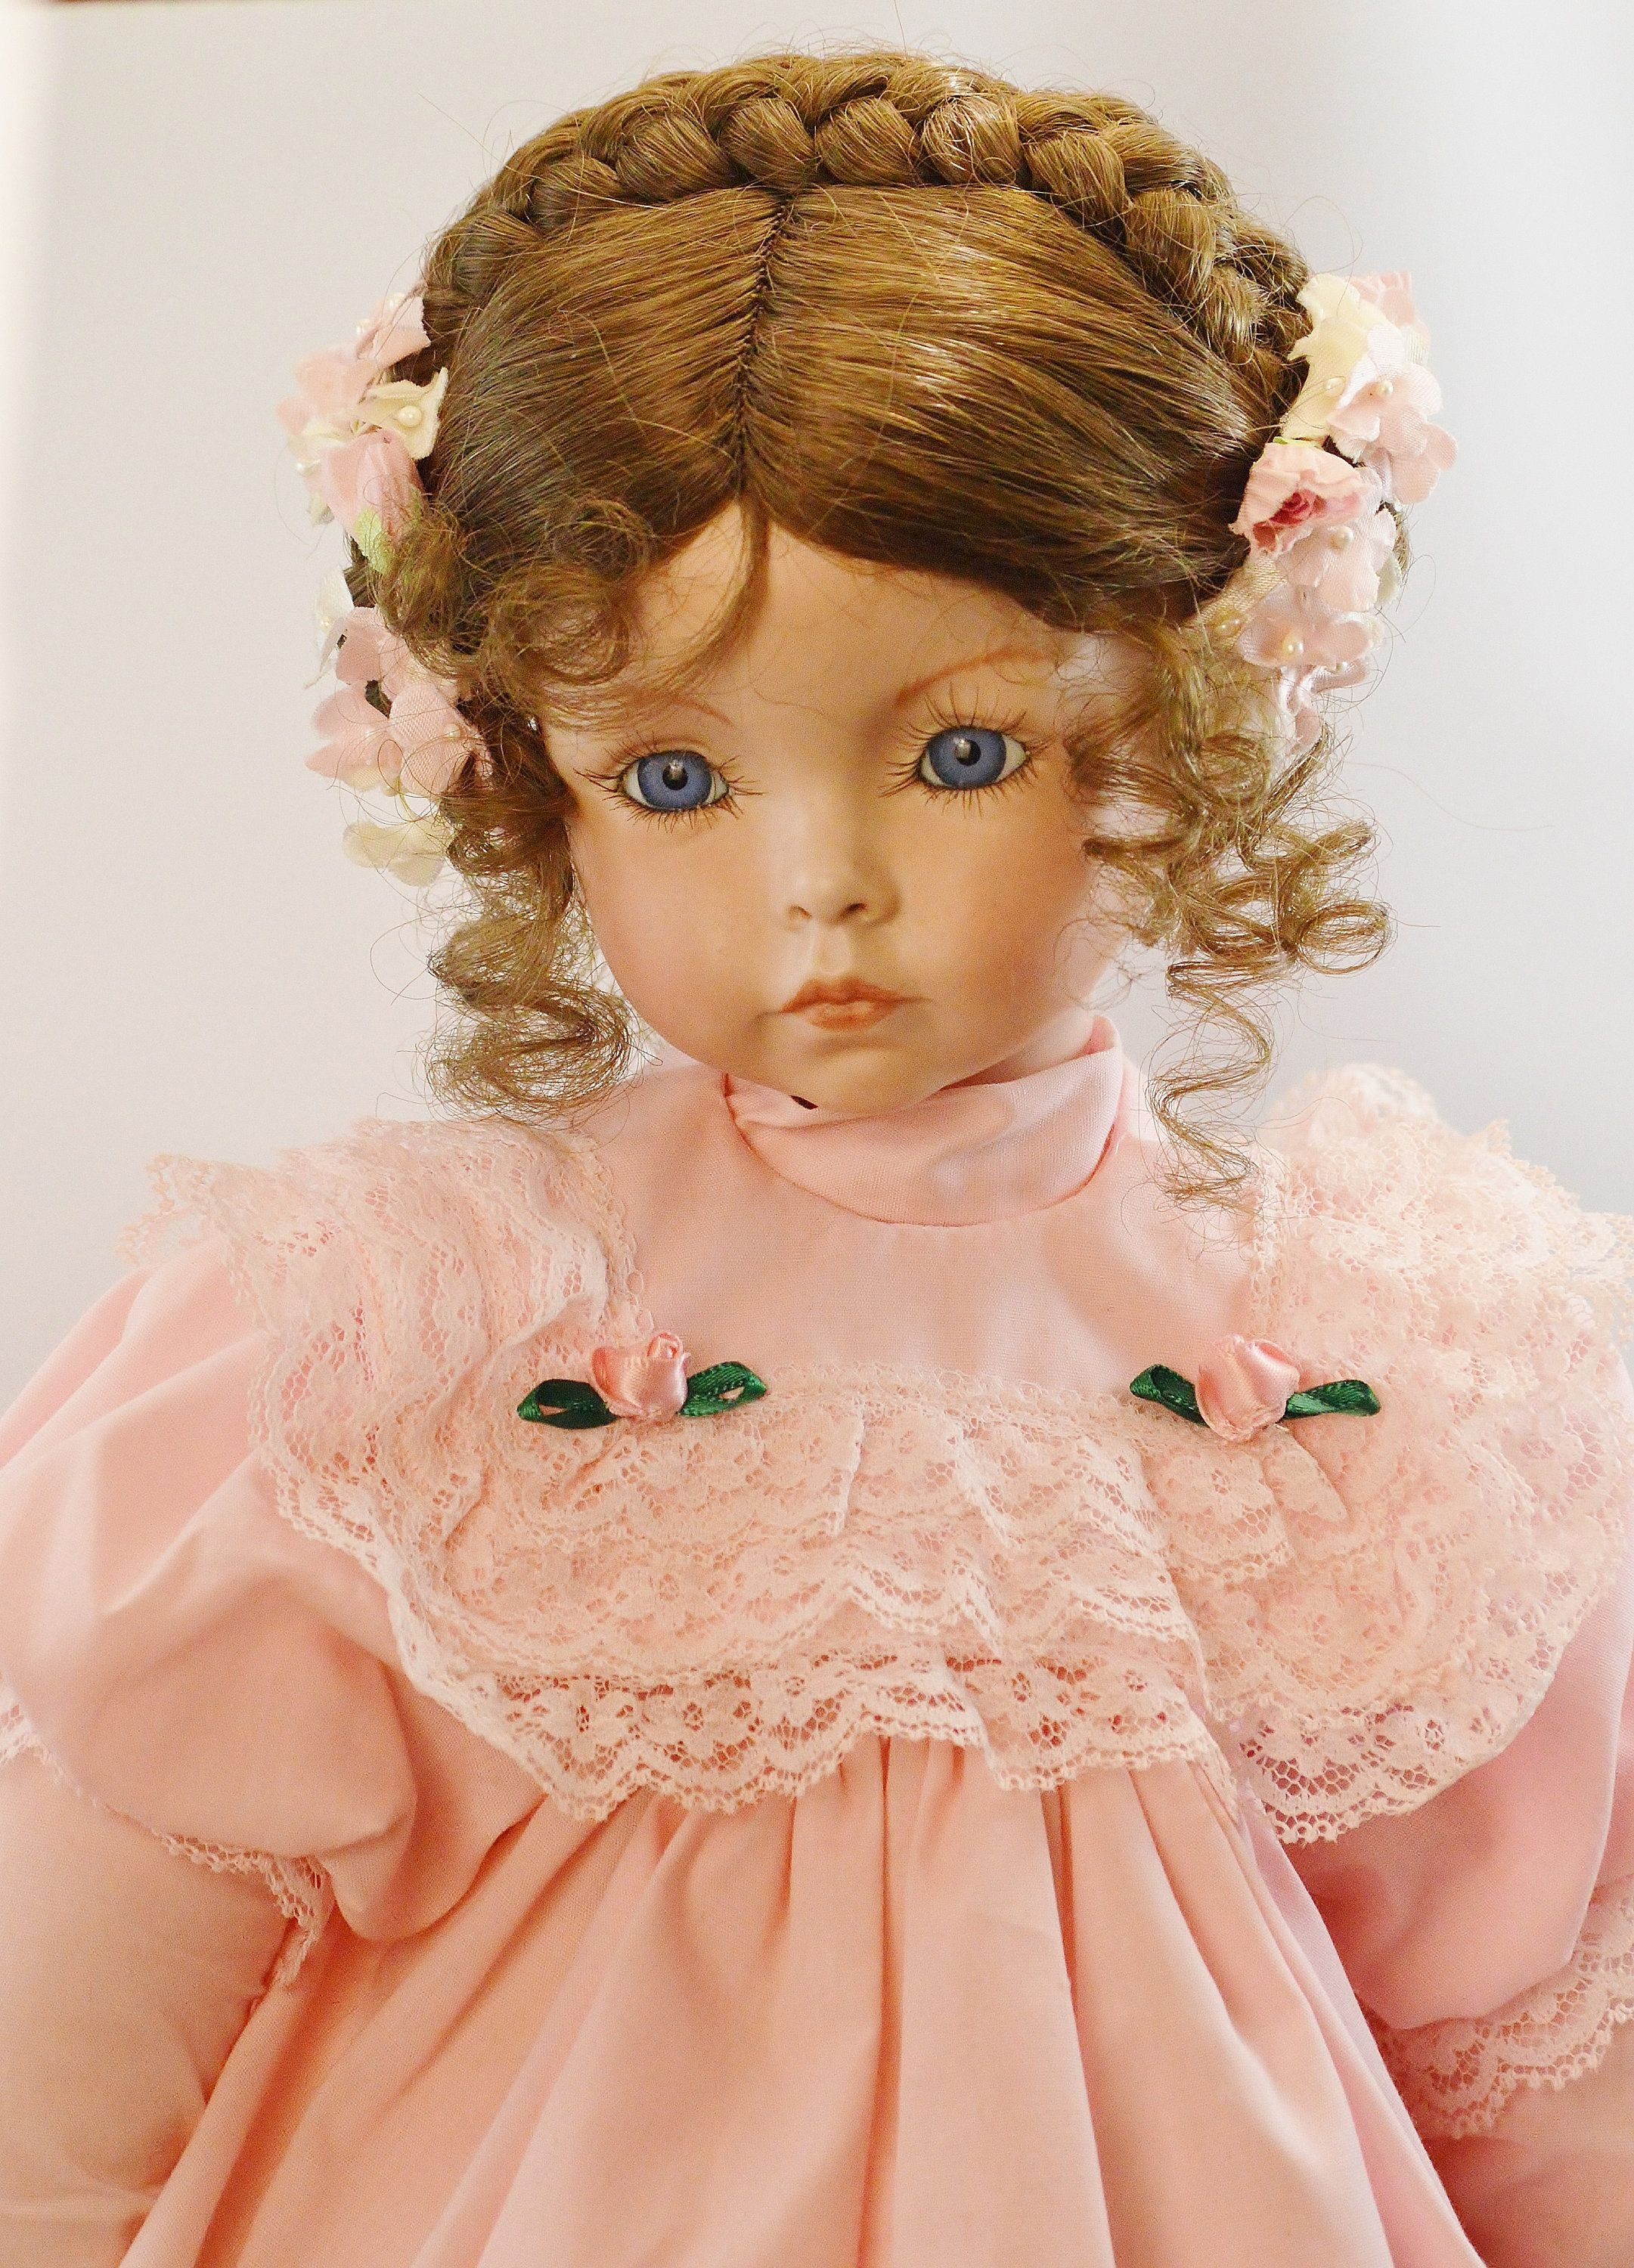 19 emily collectible doll by artist dianna effner etsy